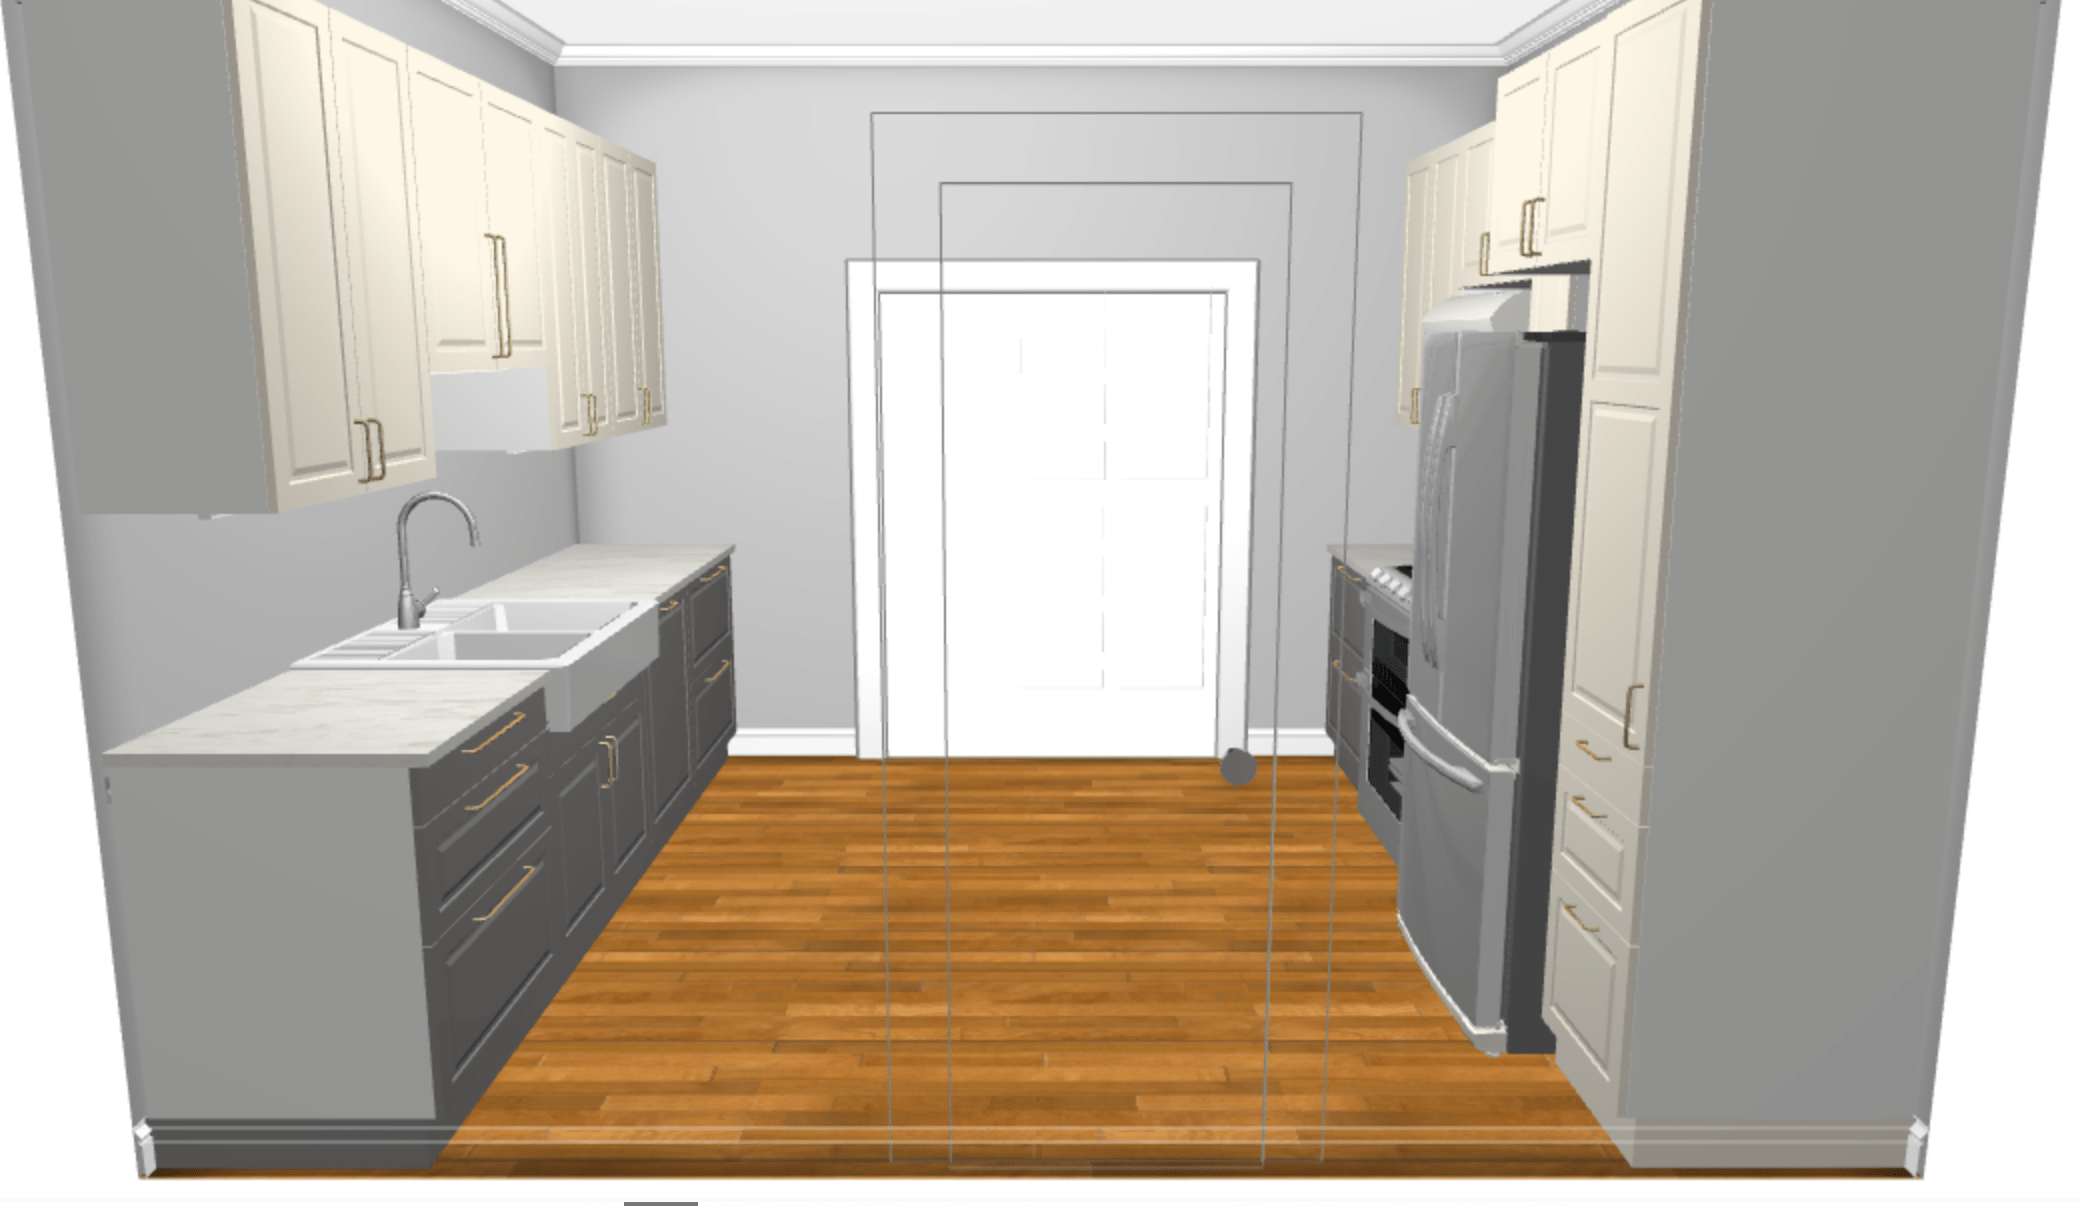 ikea kitchen remodel country style curtains small budget and design update the white apartment these are images from planner tool it s missing island because